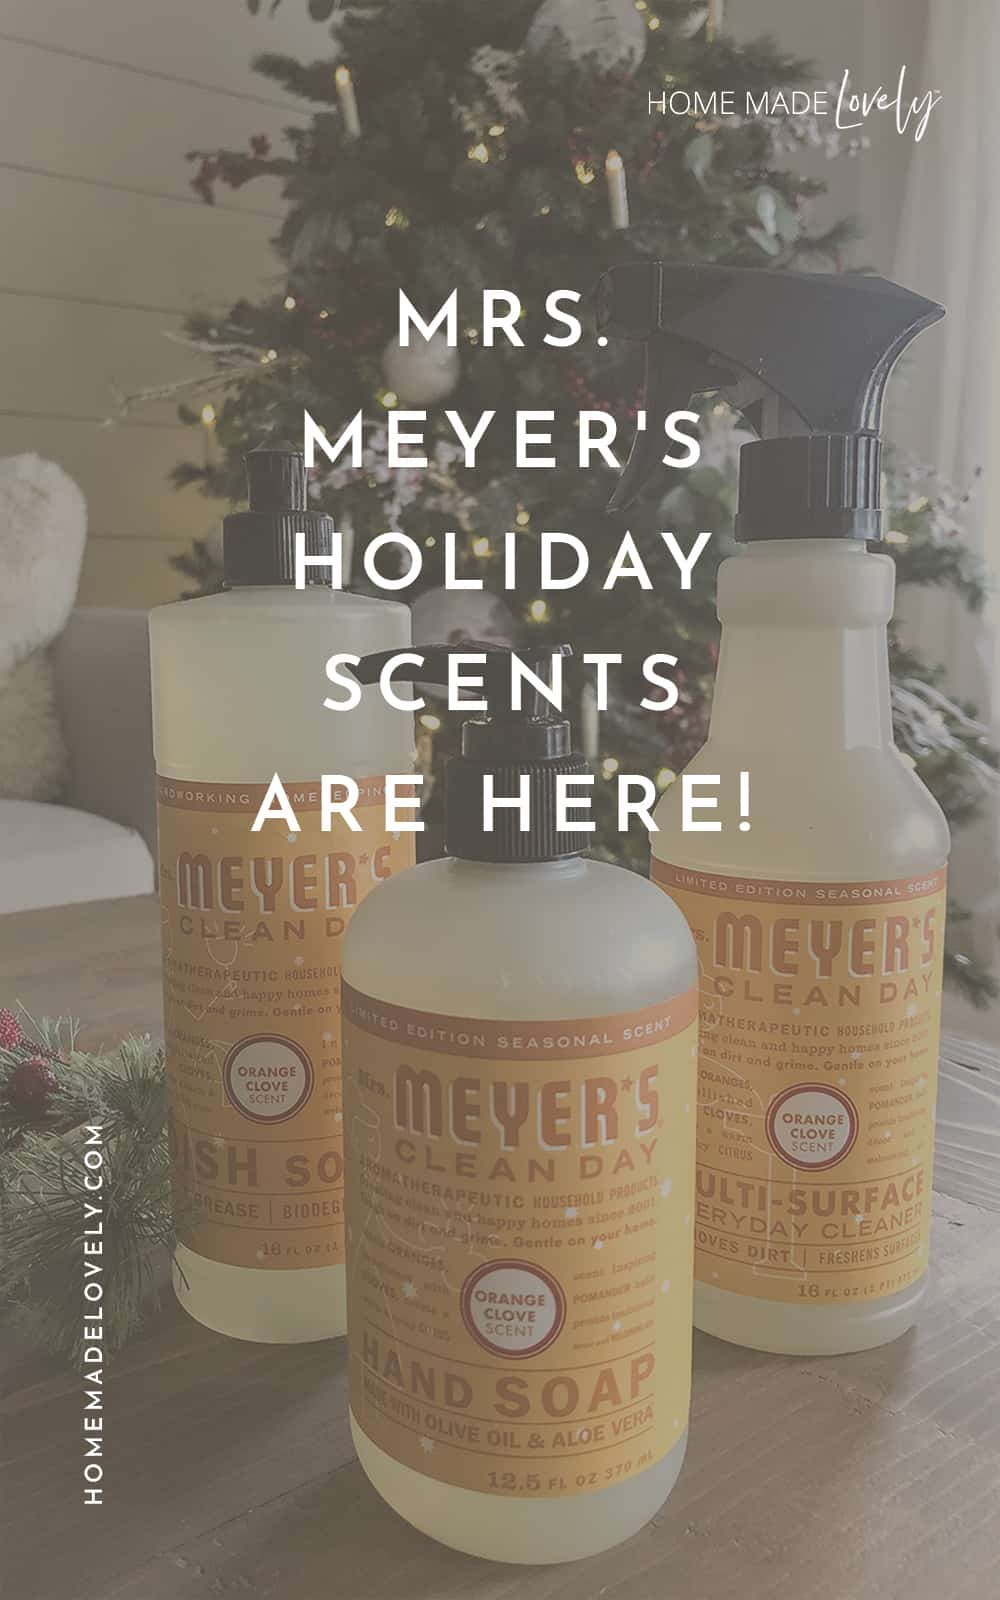 Mrs Meyers holiday scents 2020